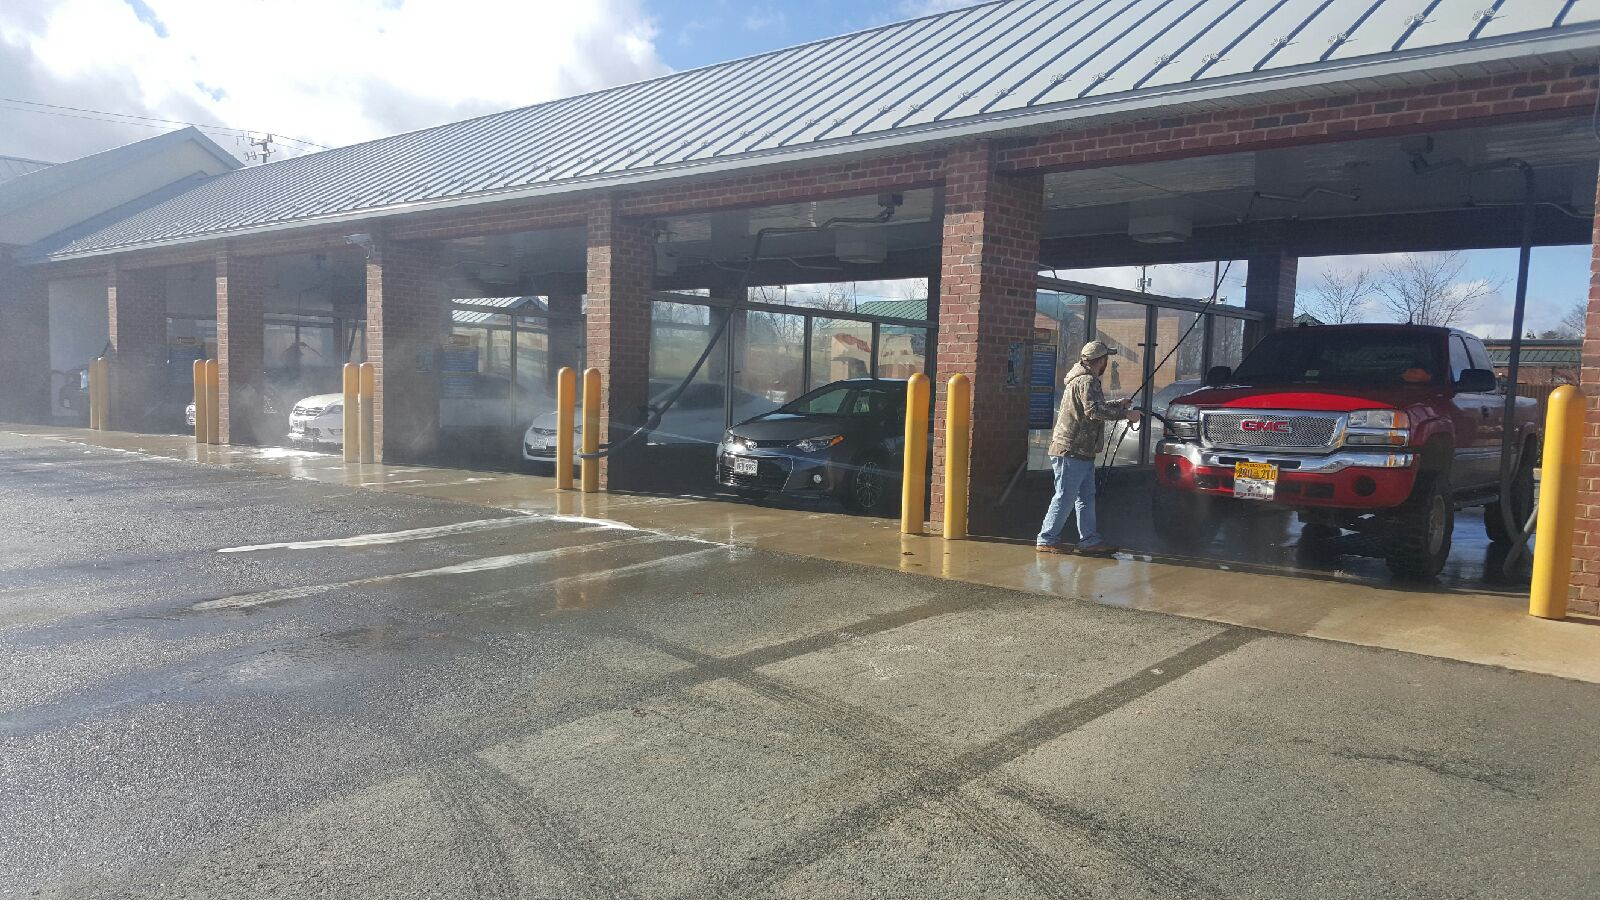 24/7 automated car wash, 24/7 self service car wash - rob's car wash